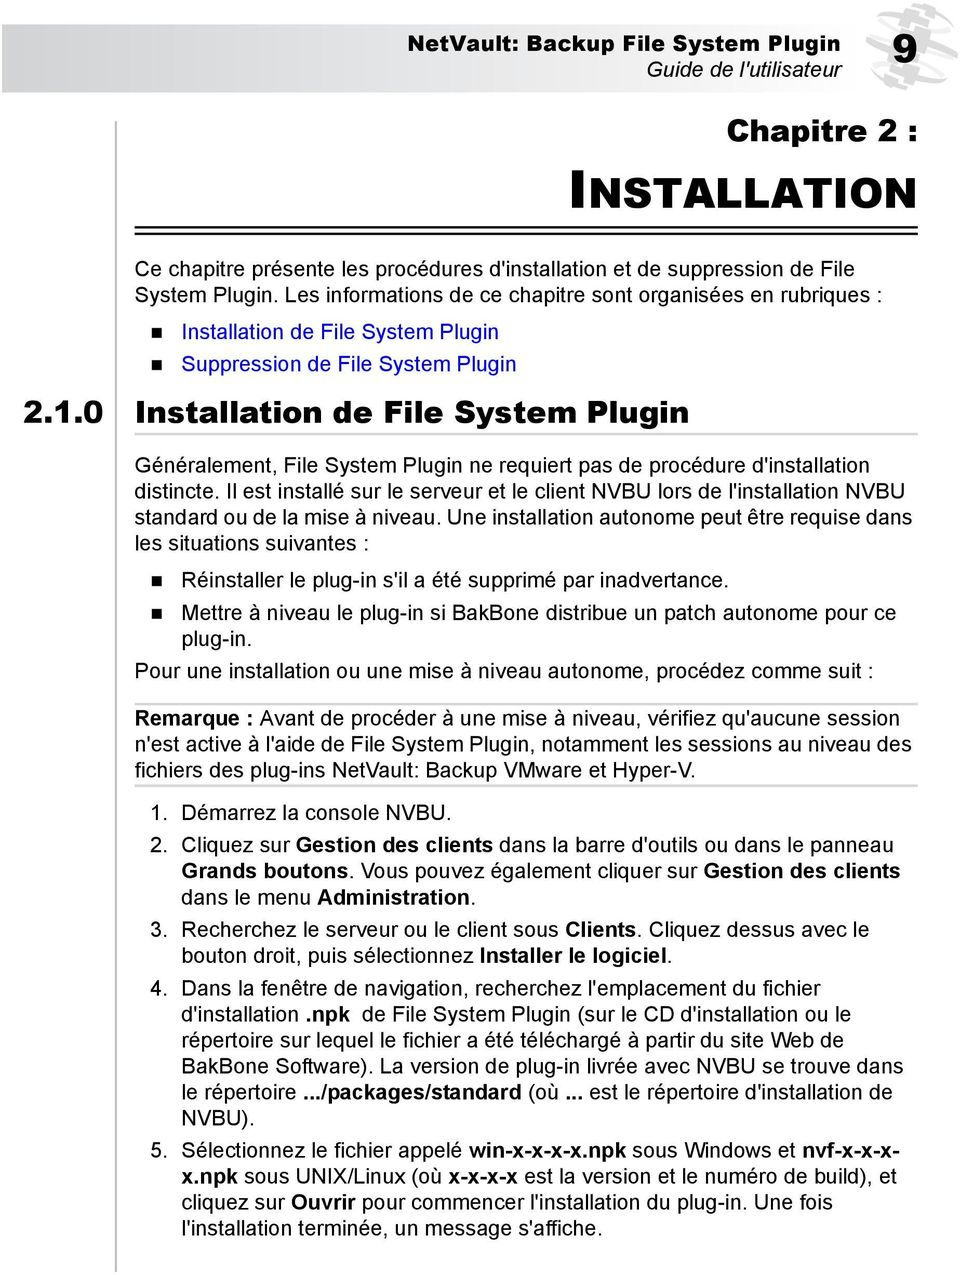 0 Installation de File System Plugin Généralement, File System Plugin ne requiert pas de procédure d'installation distincte.